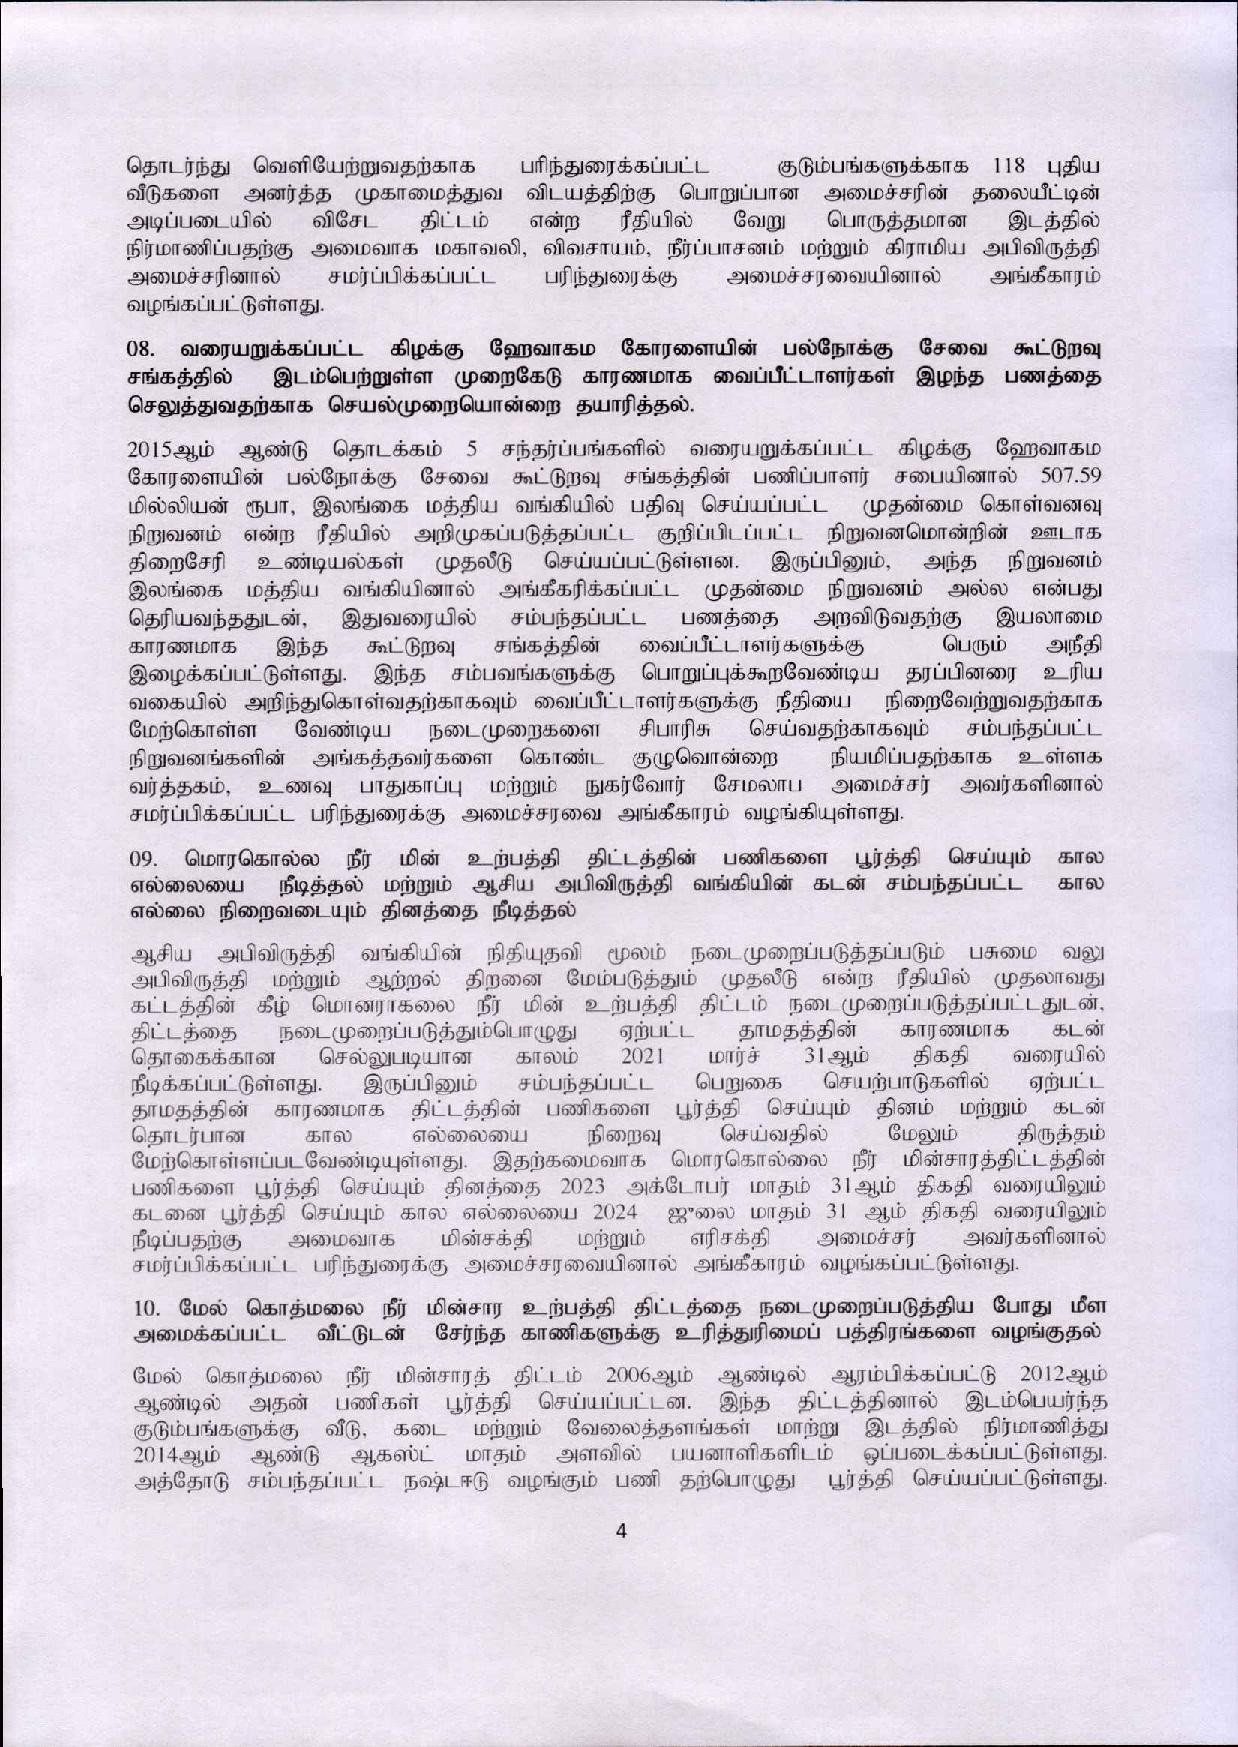 Cabinet Decision on 22.07.2020 Tamil page 004 1